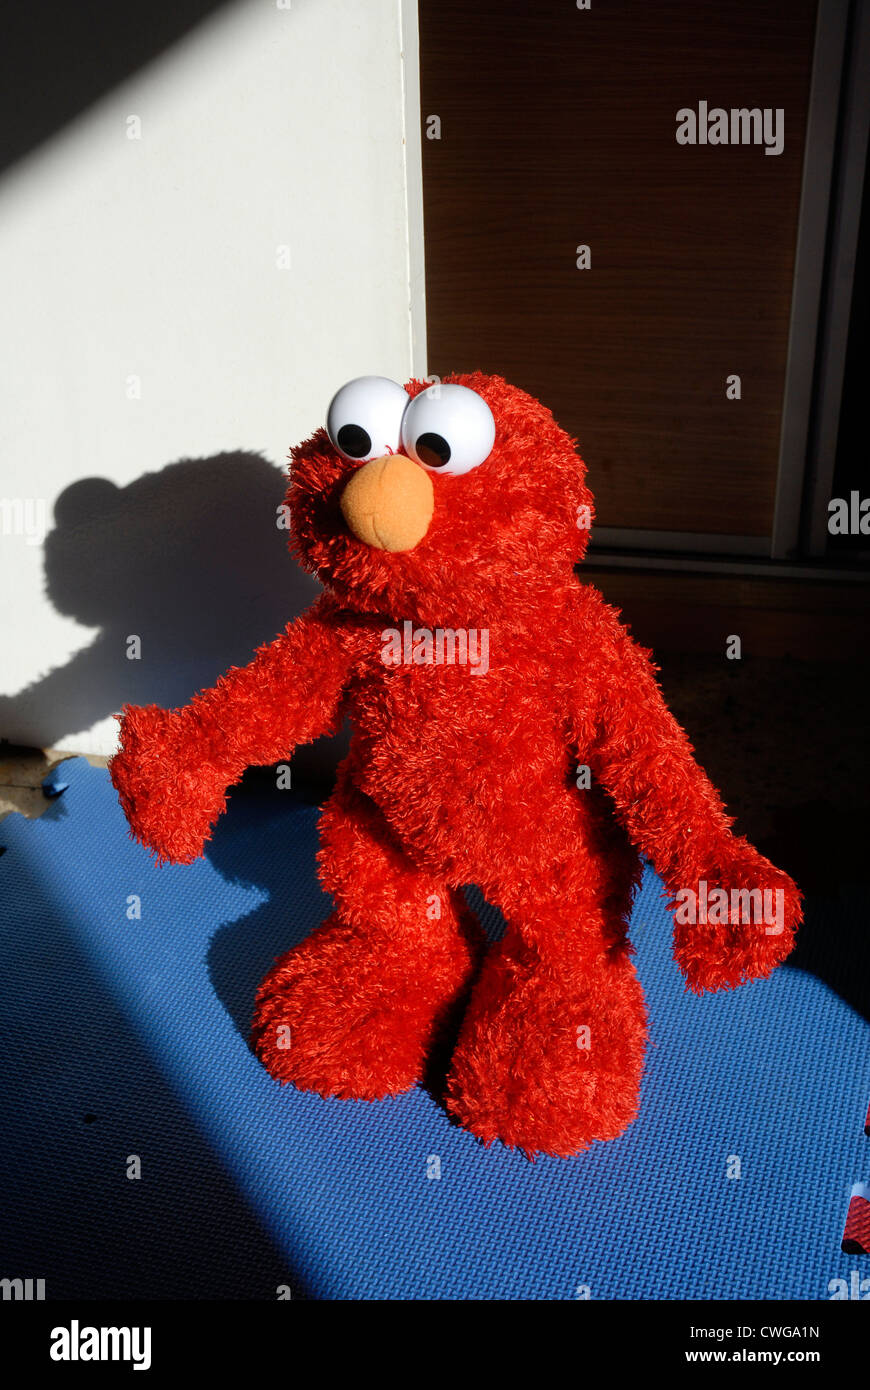 Elmo is a puppet of the television program Sesame Street. - Stock Image